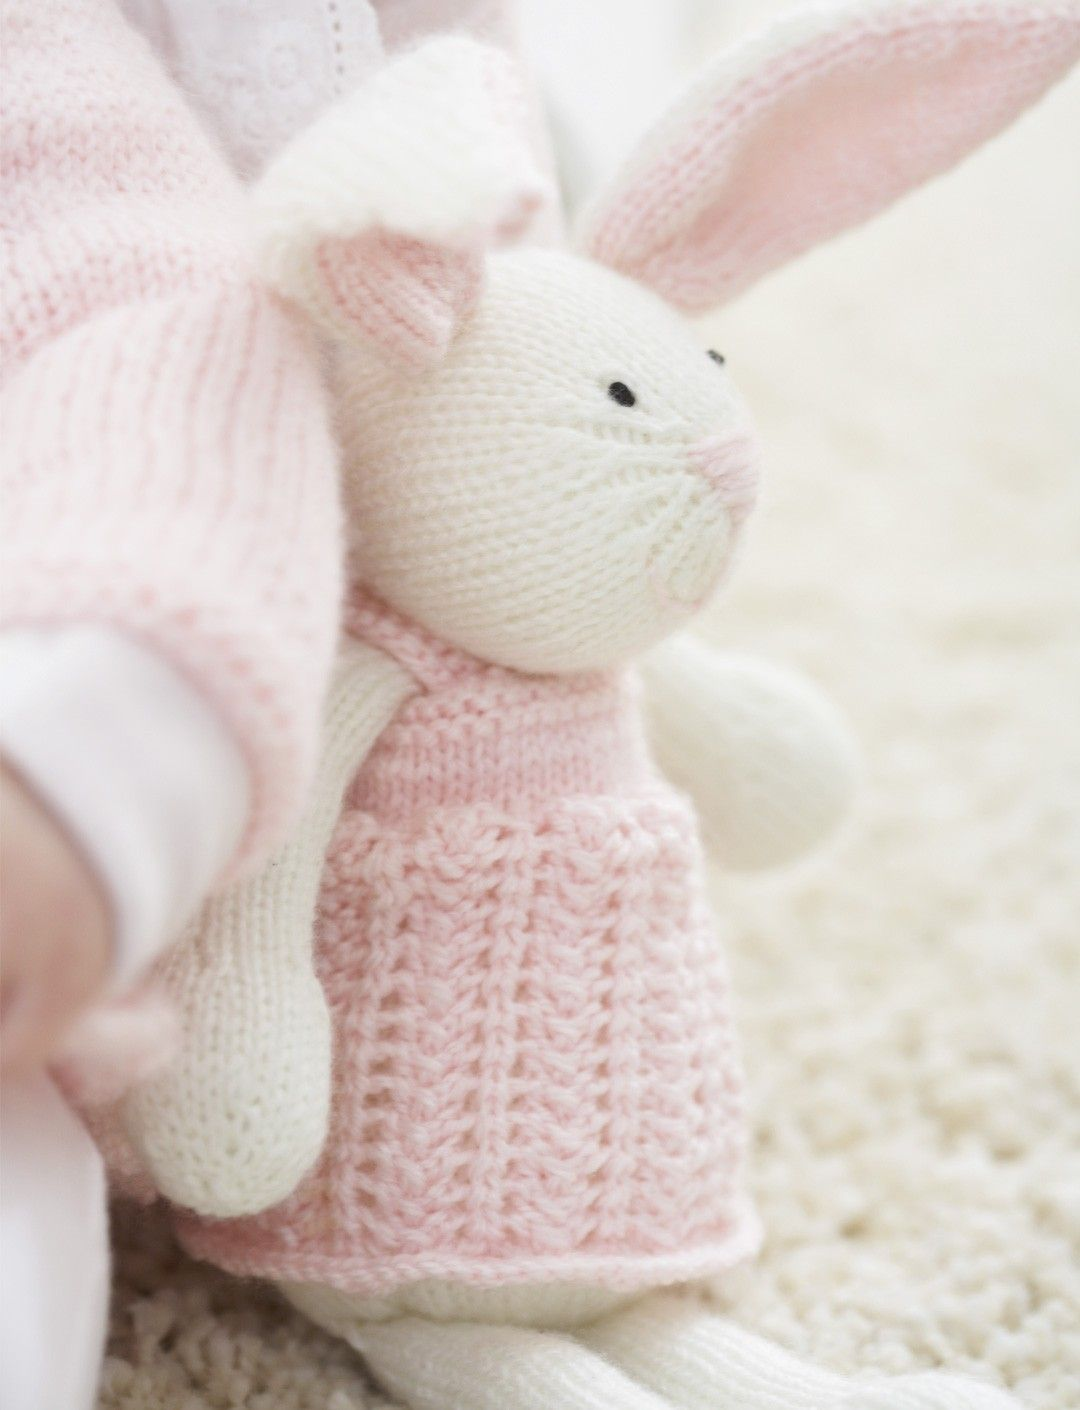 Zoe bunny free pattern download diy pinterest bunny free zoe bunny free knitting pattern pdf file i like this pattern its very similar to patterns by julie williams of little cotton rabbits bankloansurffo Choice Image